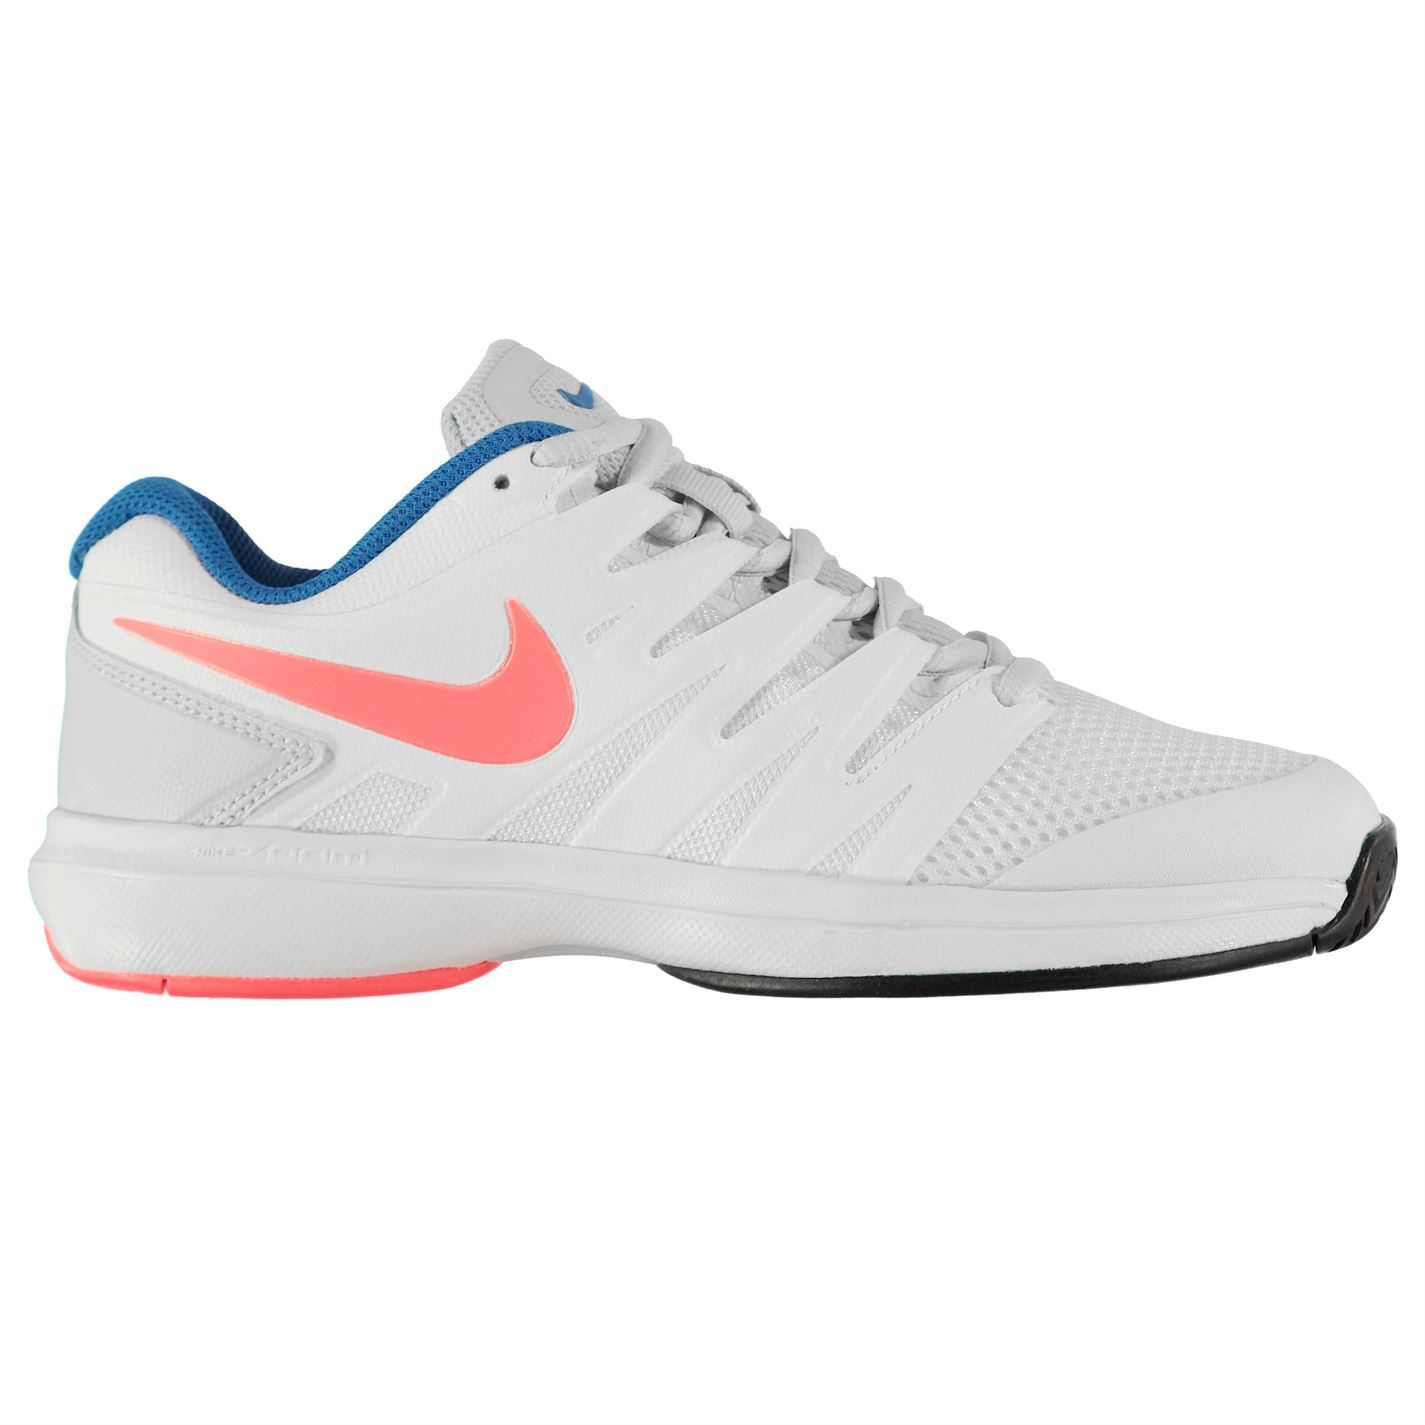 quality design a7412 aaabb ... Nike Air Zoom Prestige Tennis Shoes Womens WhiteLava Court Trainers  Sneakers ...